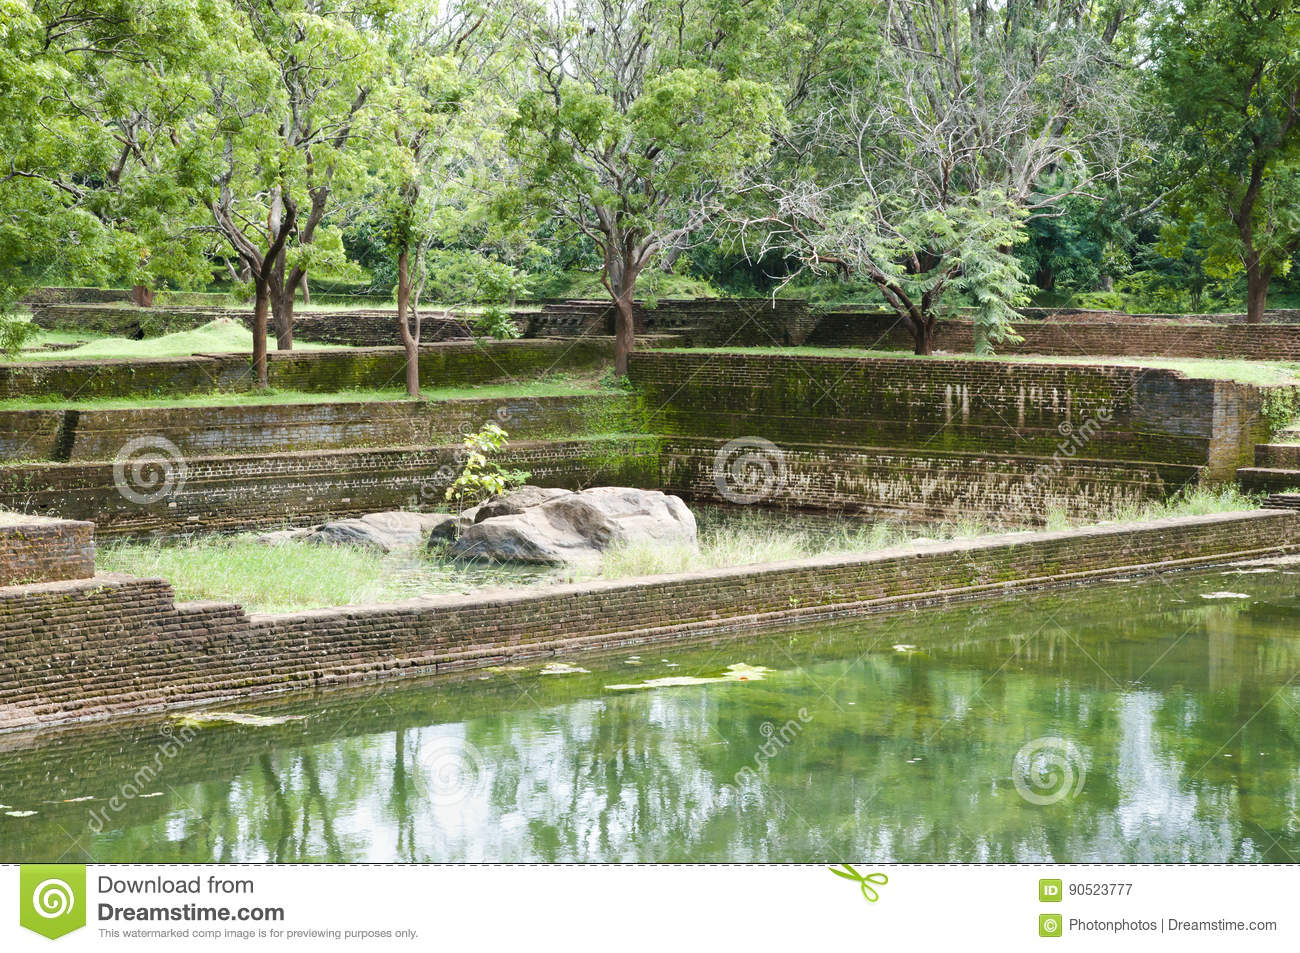 Download Sigiriya Boulder Garden   Sri Lanka Stock Image   Image Of Lanka,  Temple: